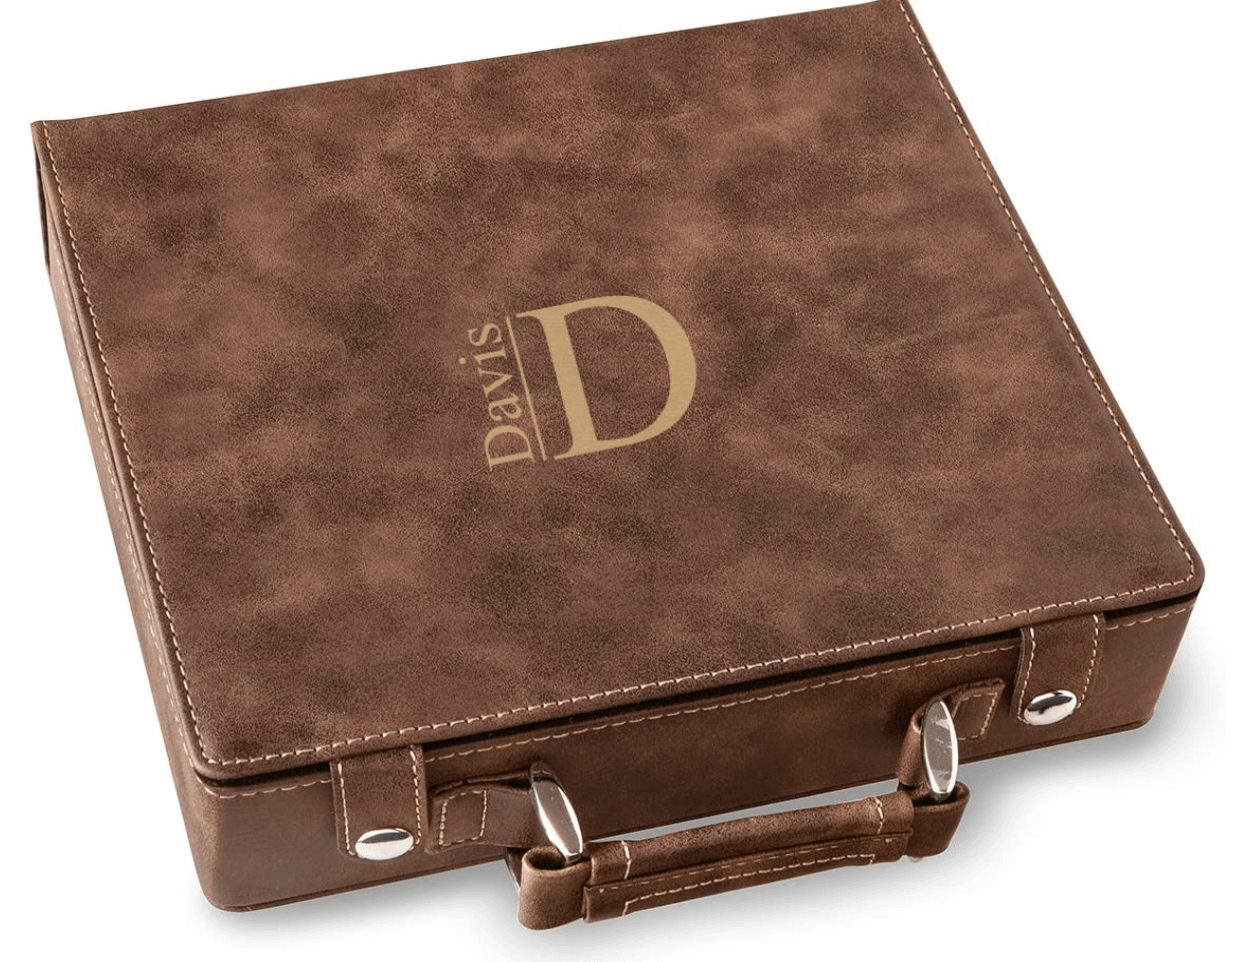 A Gift Personalized Poker Set Case